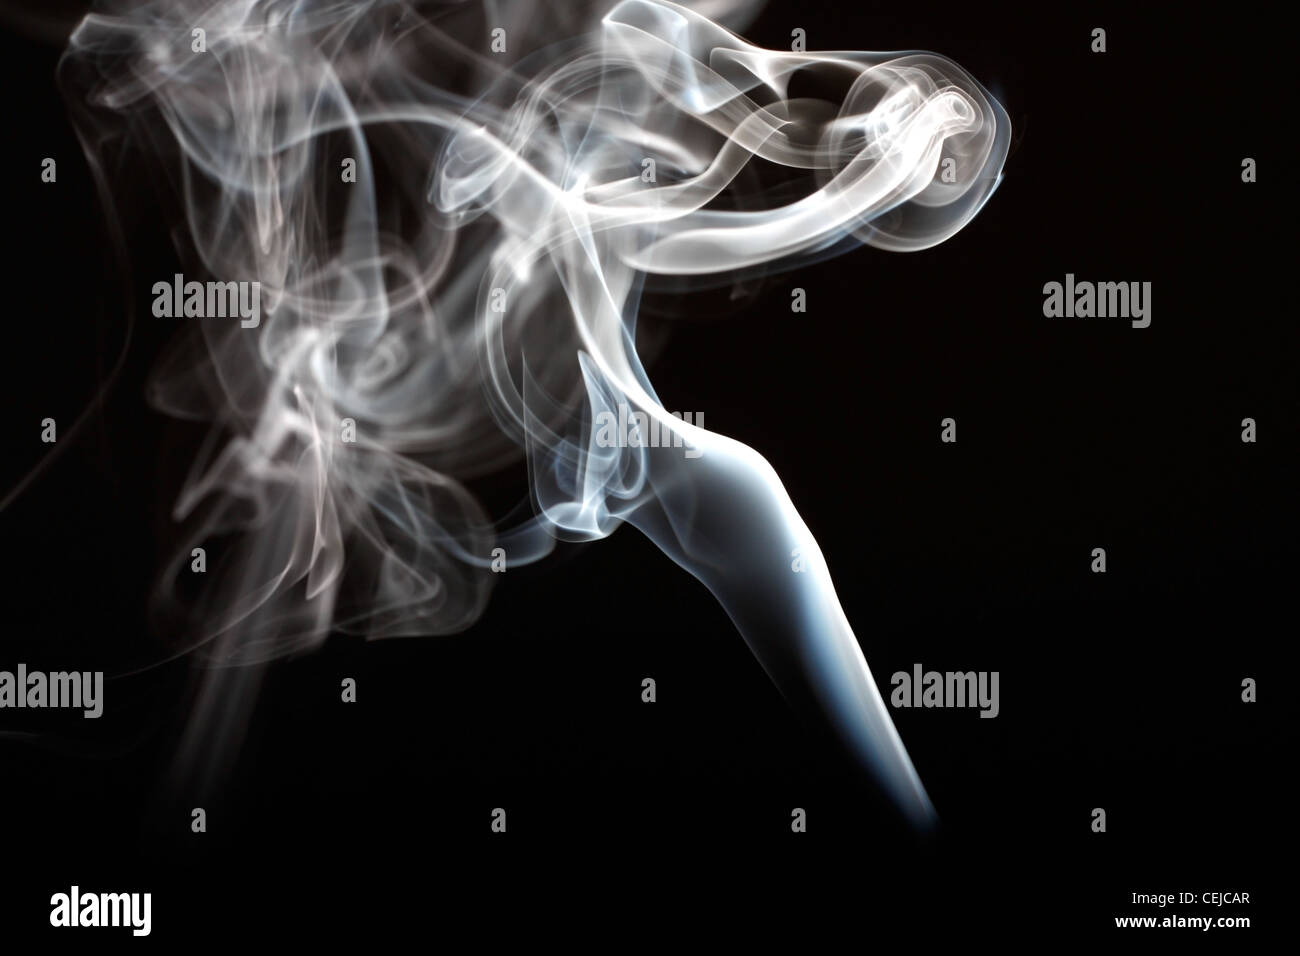 Abstract smoke curling and creating beautiful shapes - Stock Image